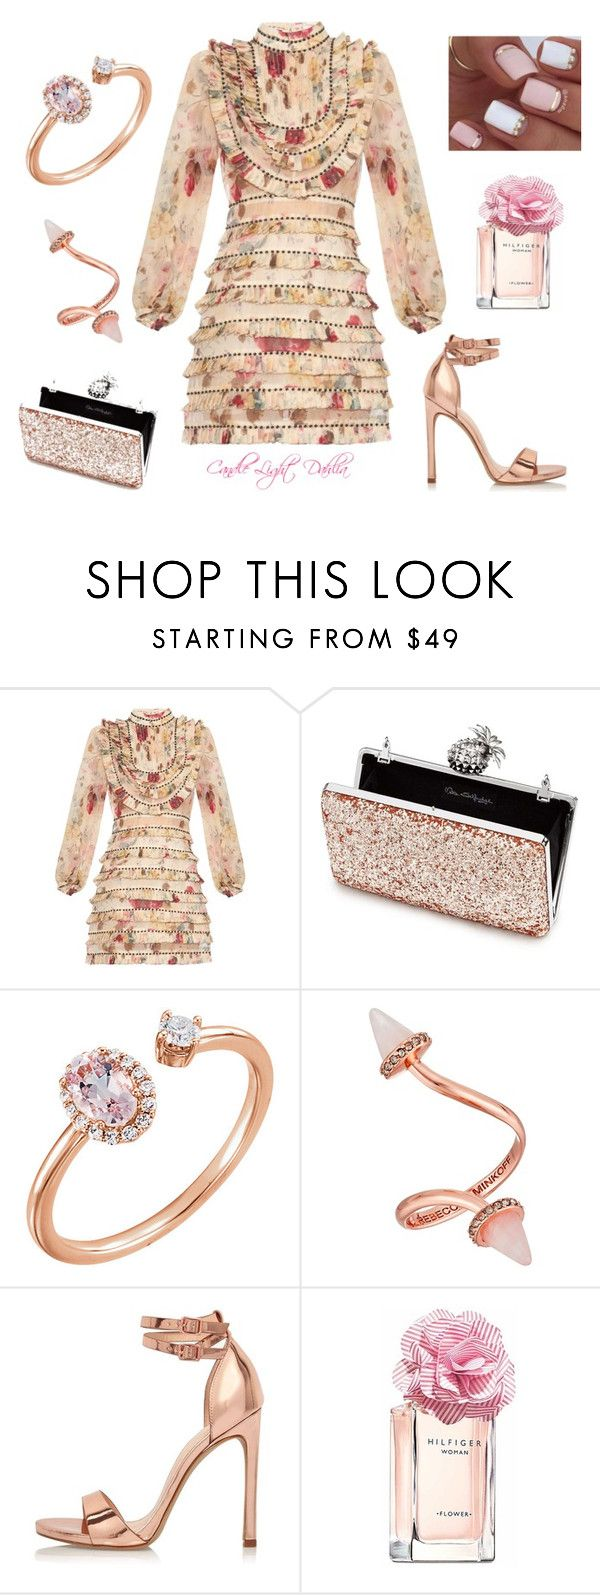 """""""♥♥♥02-13-2017♥♥♥"""" by falloncrystian ❤ liked on Polyvore featuring Zimmermann, Miss Selfridge, Rebecca Minkoff, River Island and Tommy Hilfiger"""